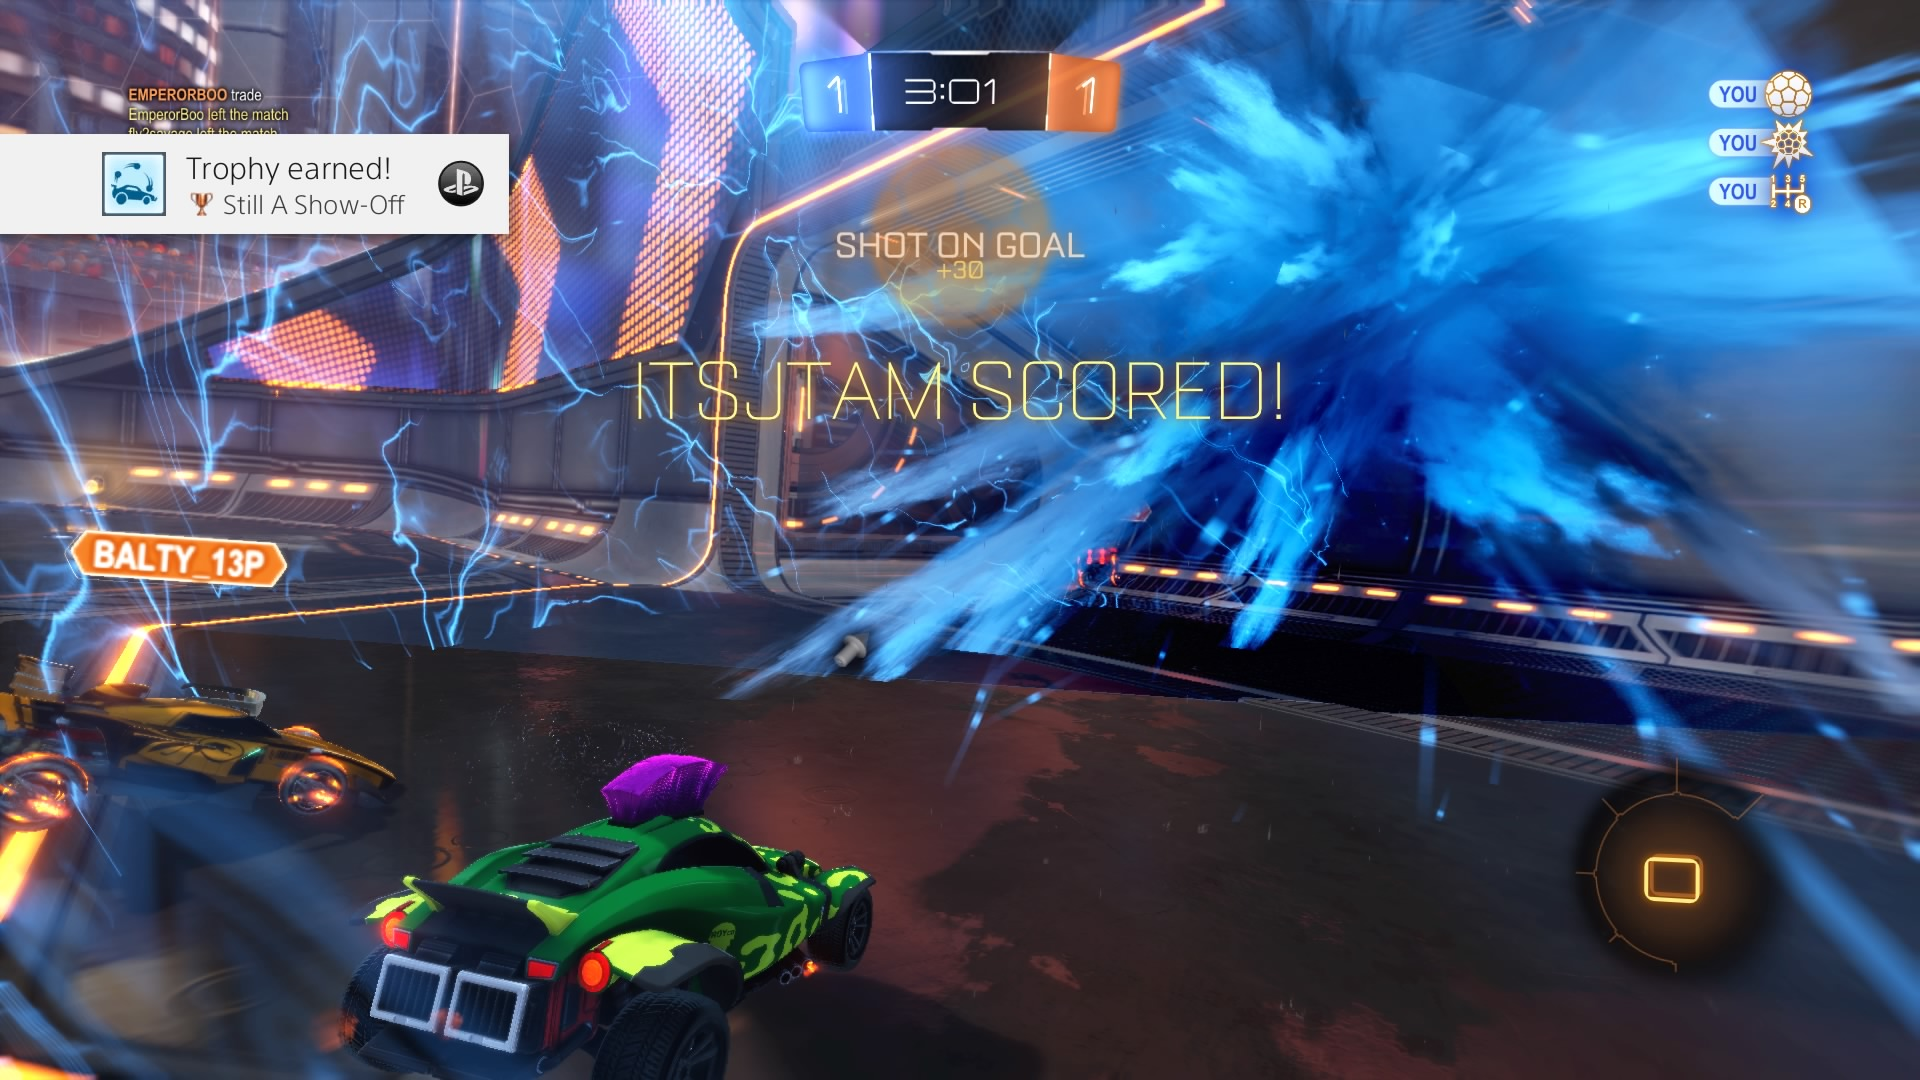 rocket league still a show off wallpaper 64443